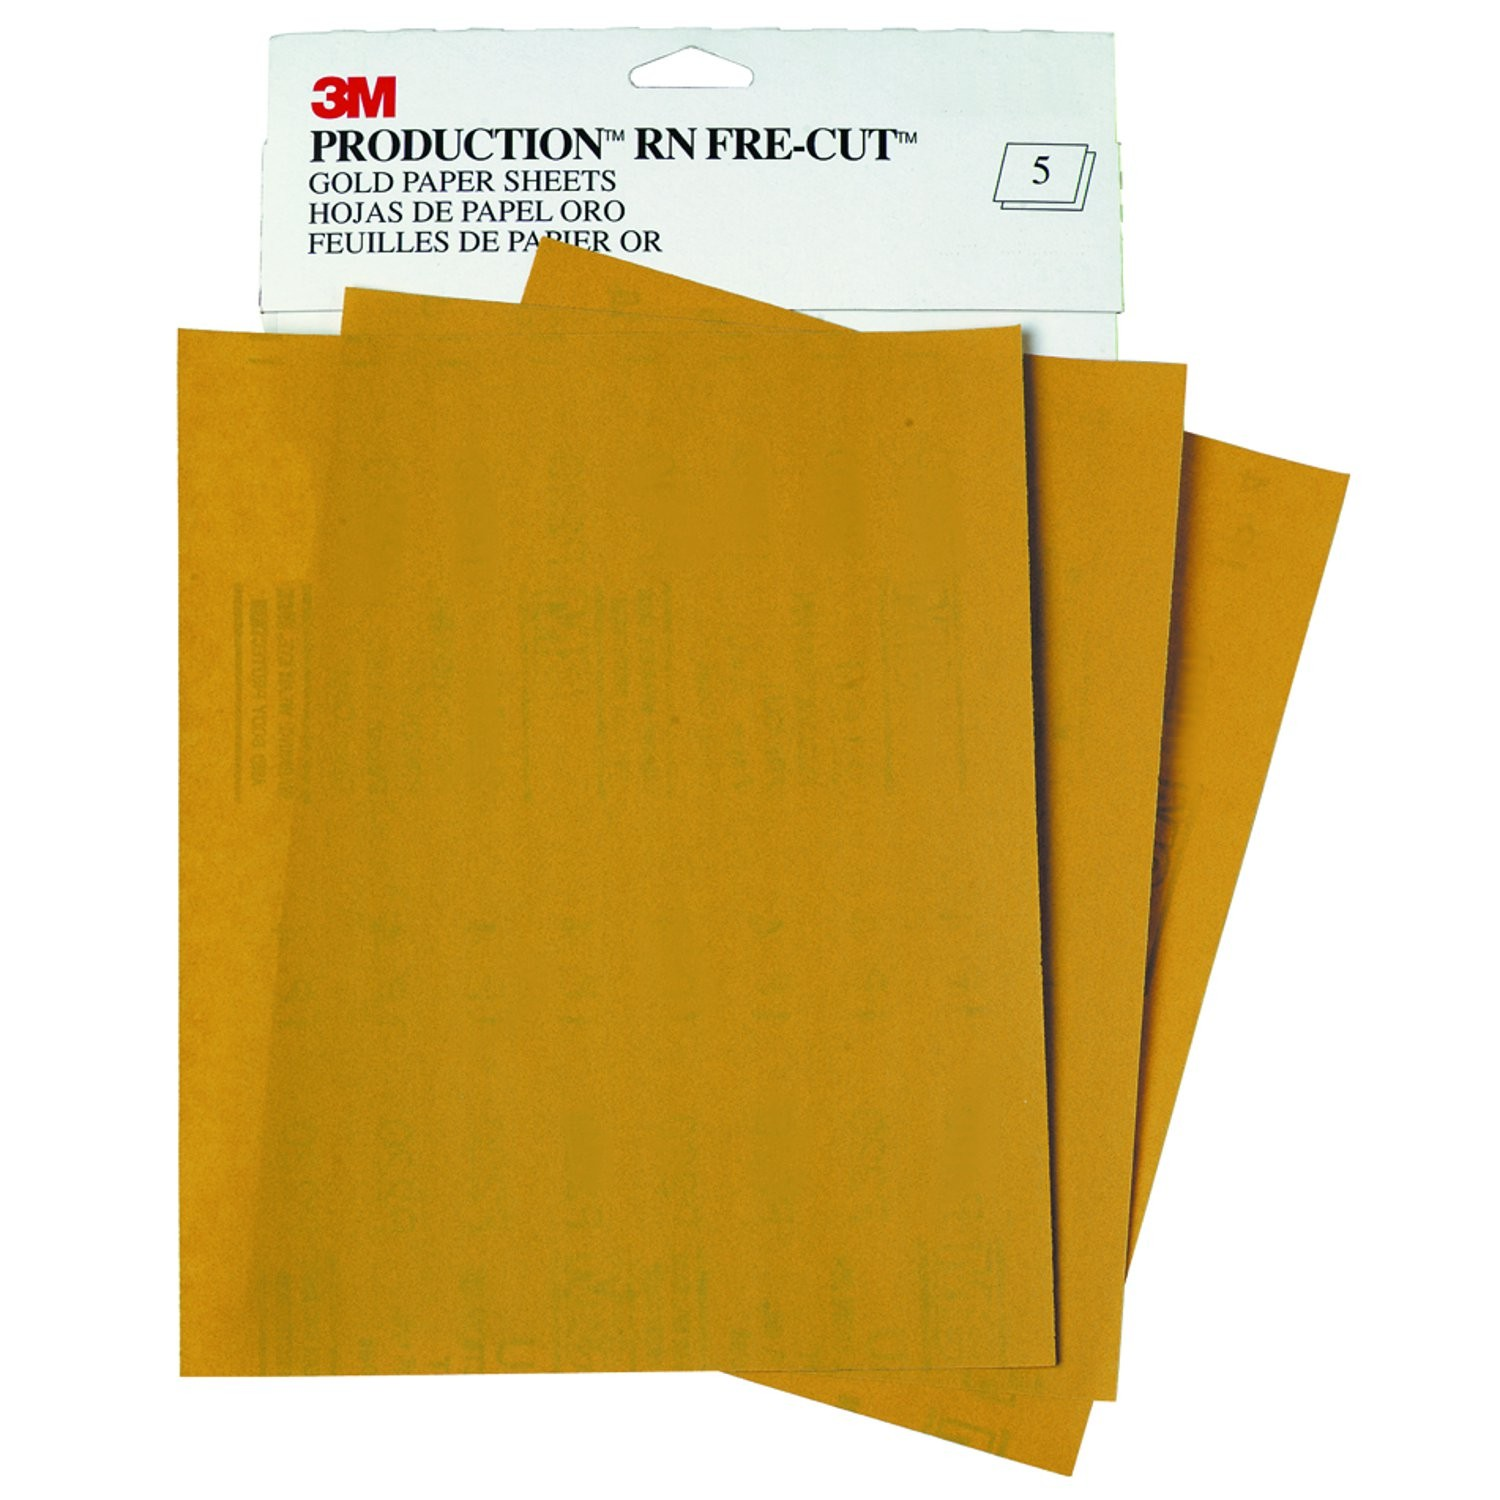 3M 9X11 P400 Grit Gold Sheet Sand Paper #02539 Sleeve at Sears.com